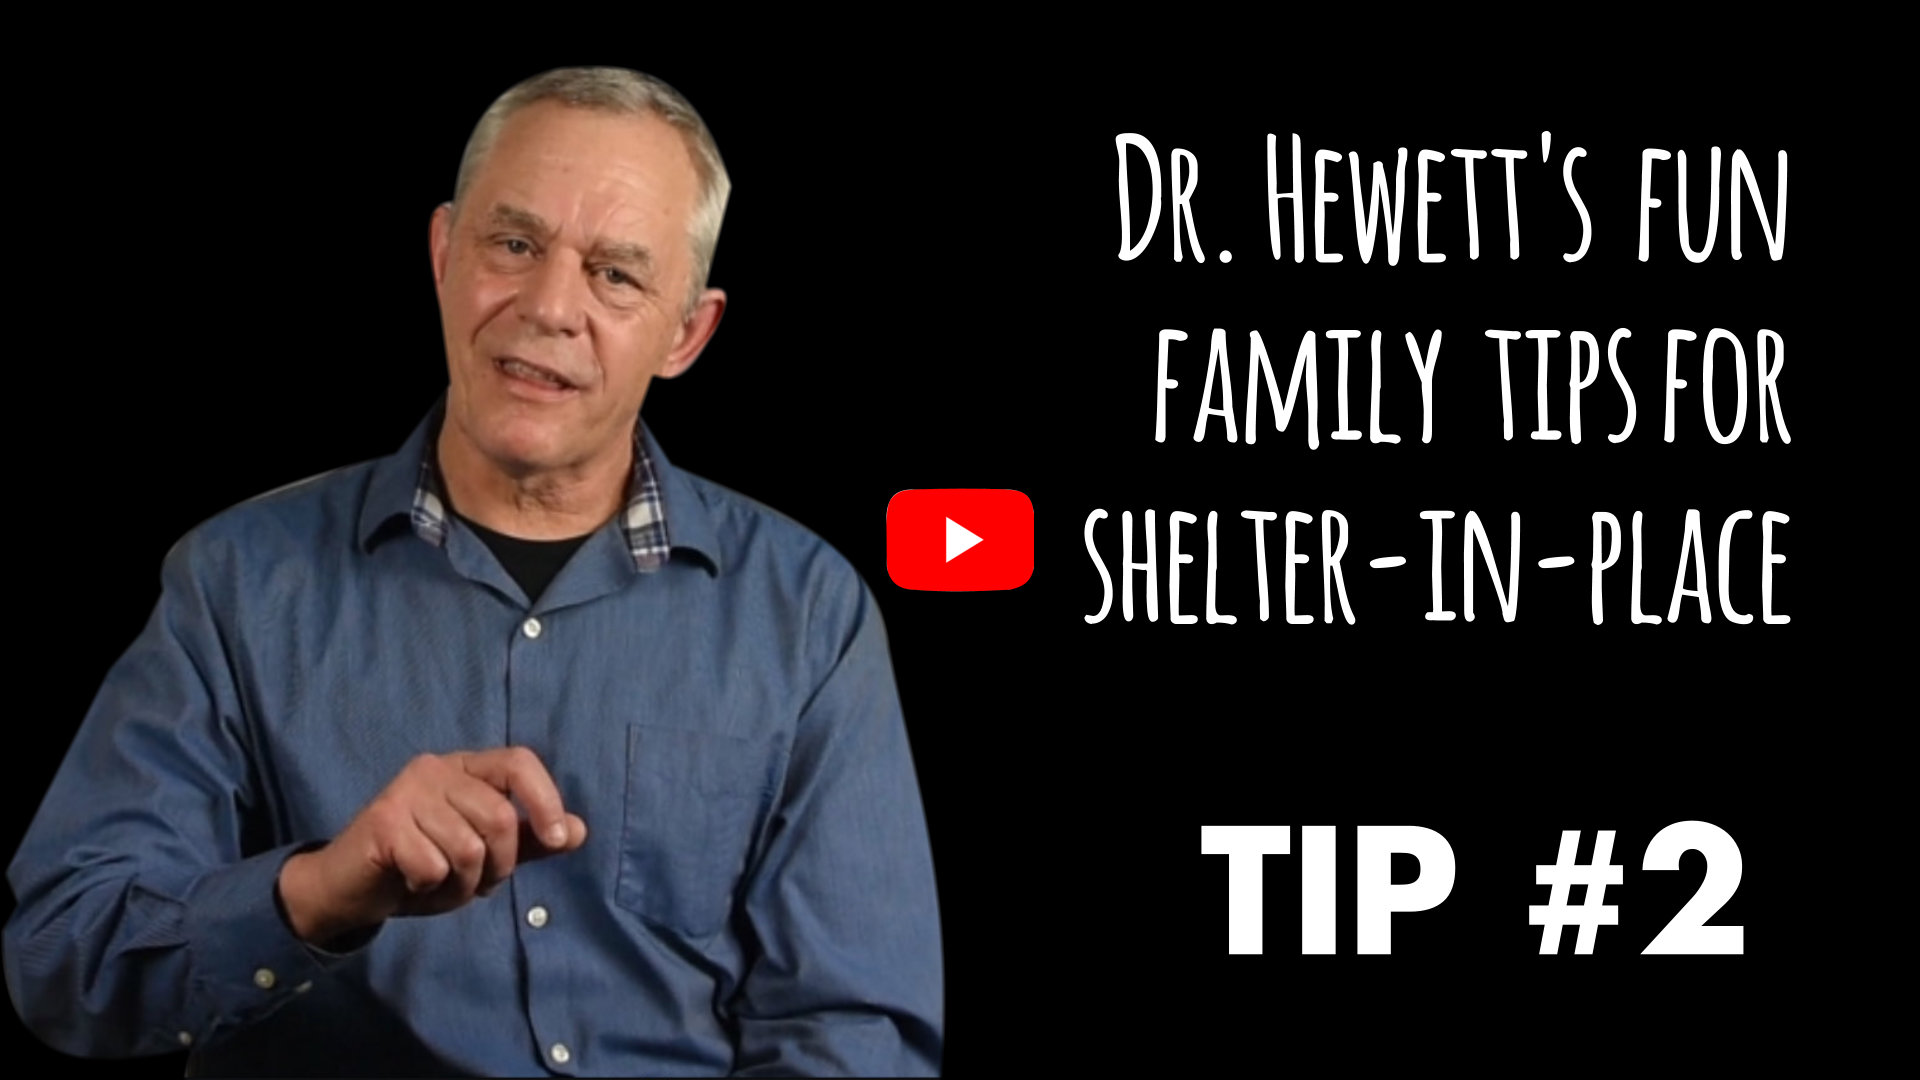 Dr Hewett's Family Tip #2 for Sheltering at Home: Family Contract